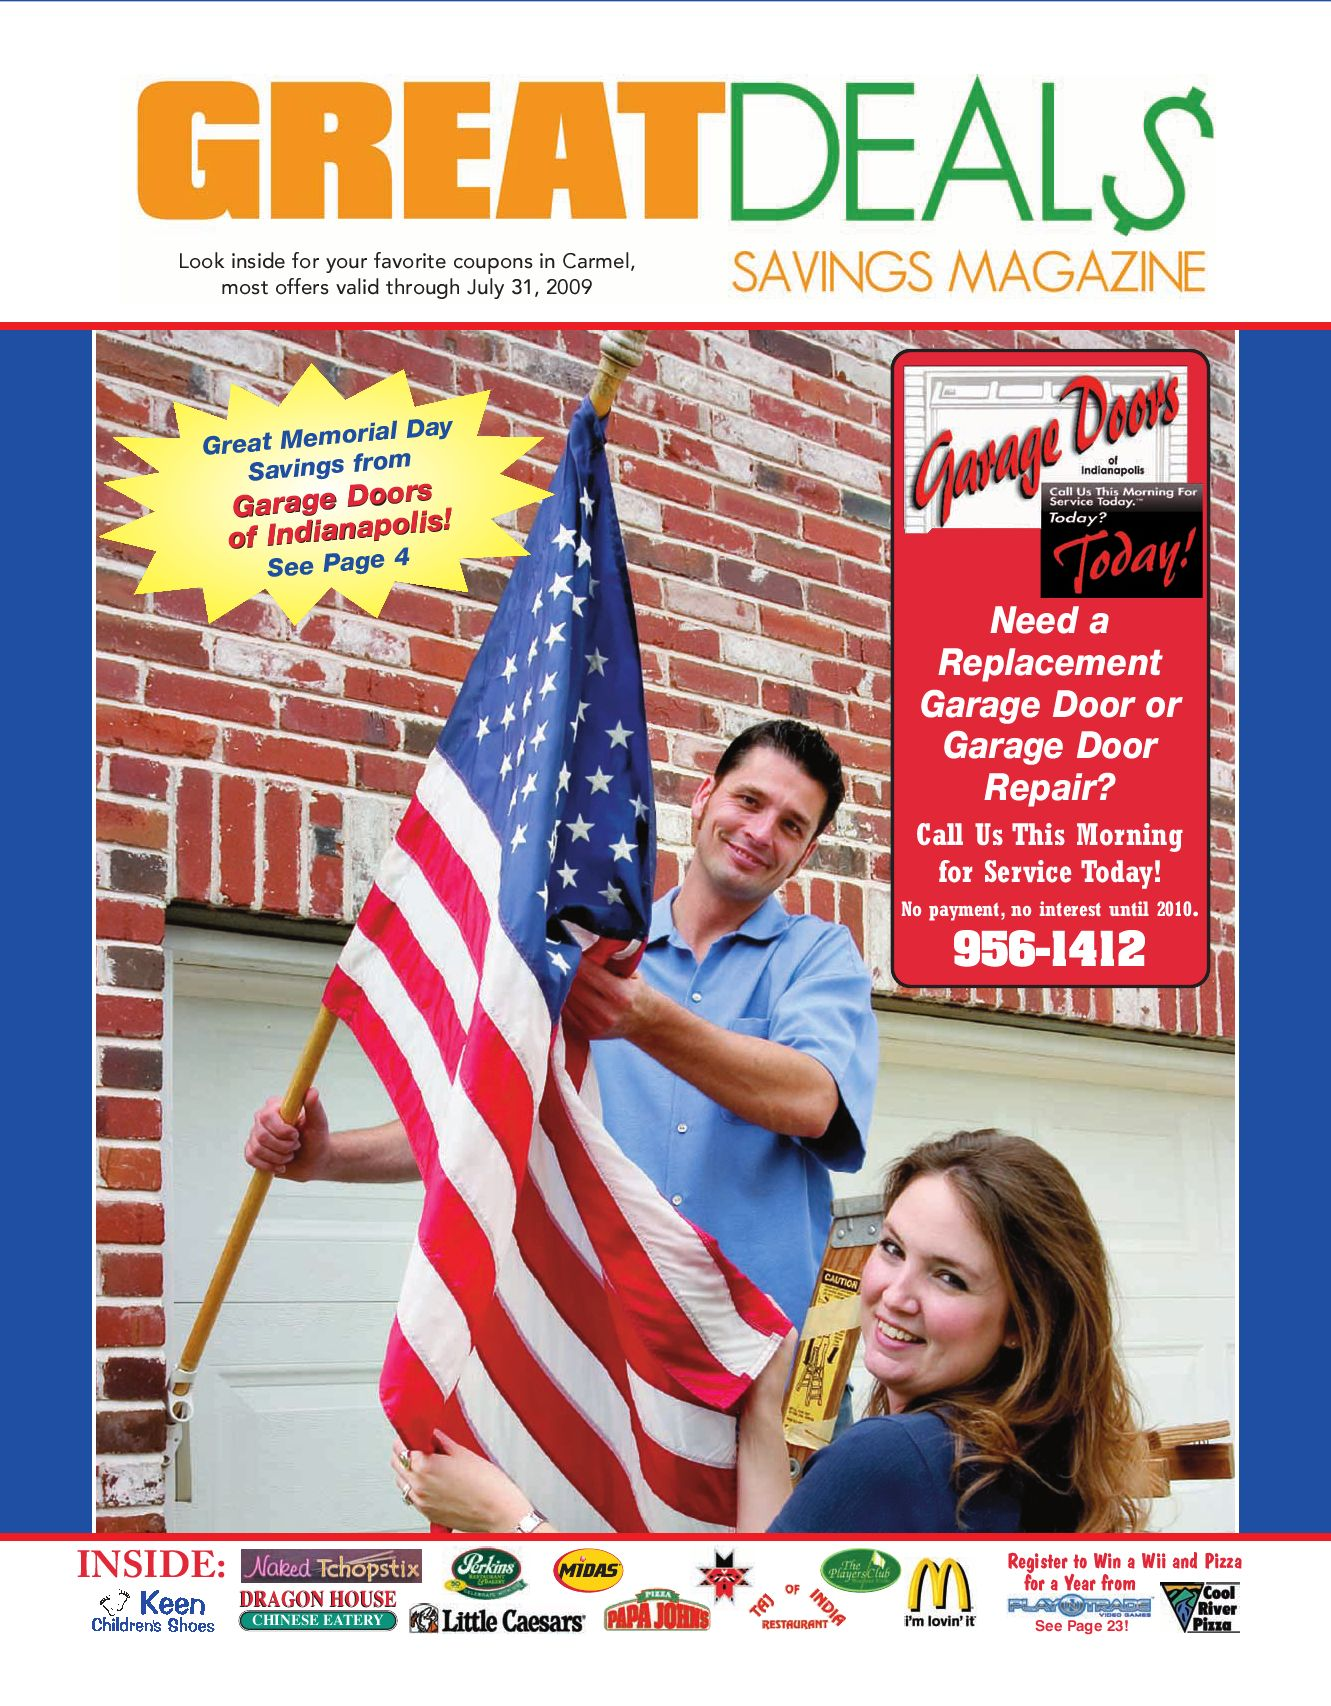 Garage Door Coupons Indianapolis Carmel Great Deals Savings Magazine By Steve Mougeotte Issuu